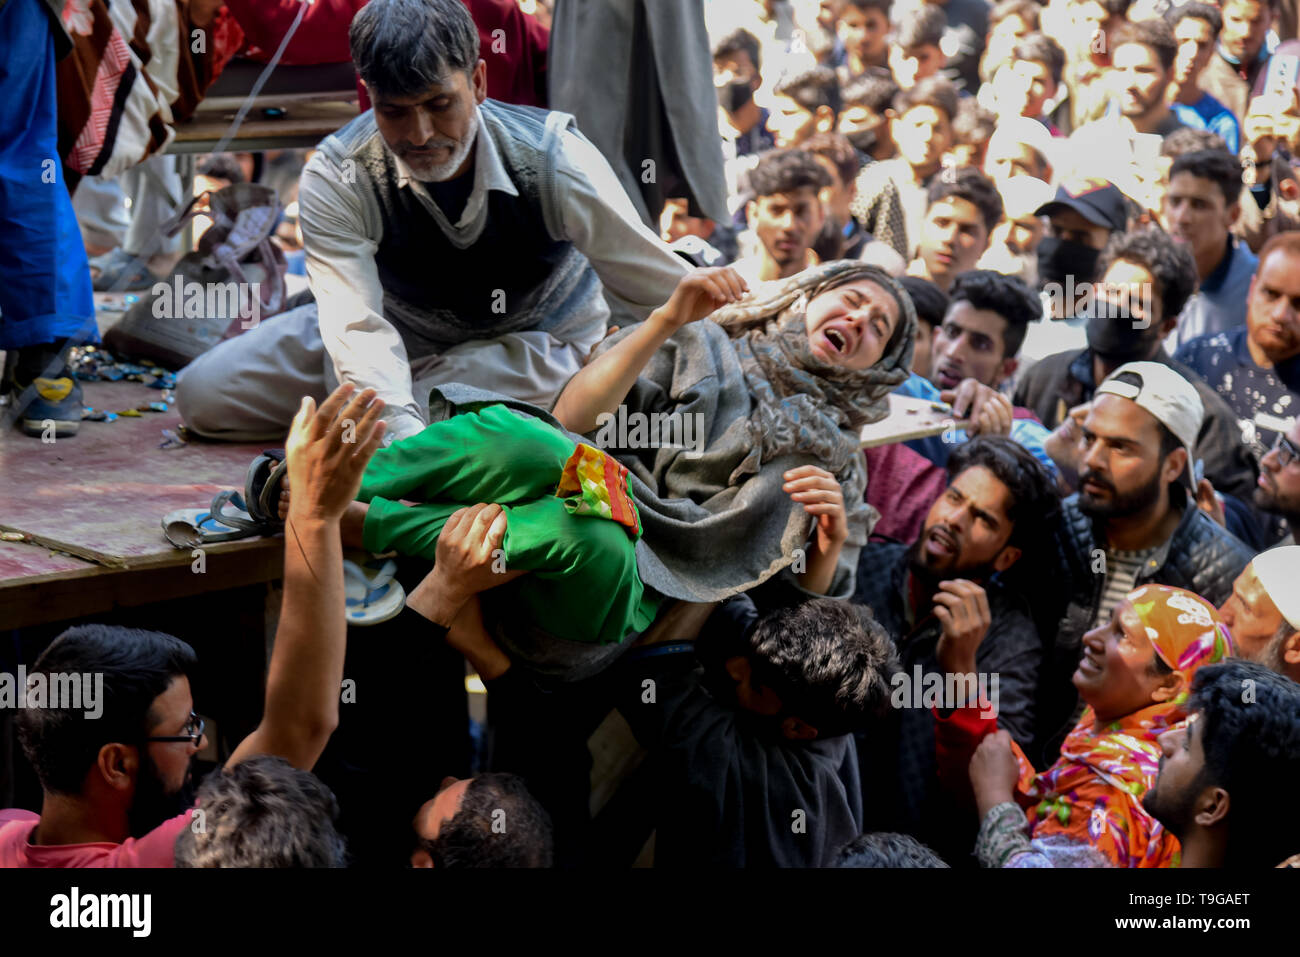 A relative of the slain Kashmiri Rebel Showkat Ahmed seen mourning next to his dead body during the funeral ceremony at his residence in Pulwama, South of Srinagar. Thousands attended the funeral ceremony of slain Showkat Ahmed Dar at his residence in Panzgam Pulwama. Showkat was among the three Kashmiri Rebels killed in a gunfight in Pulwama. - Stock Image